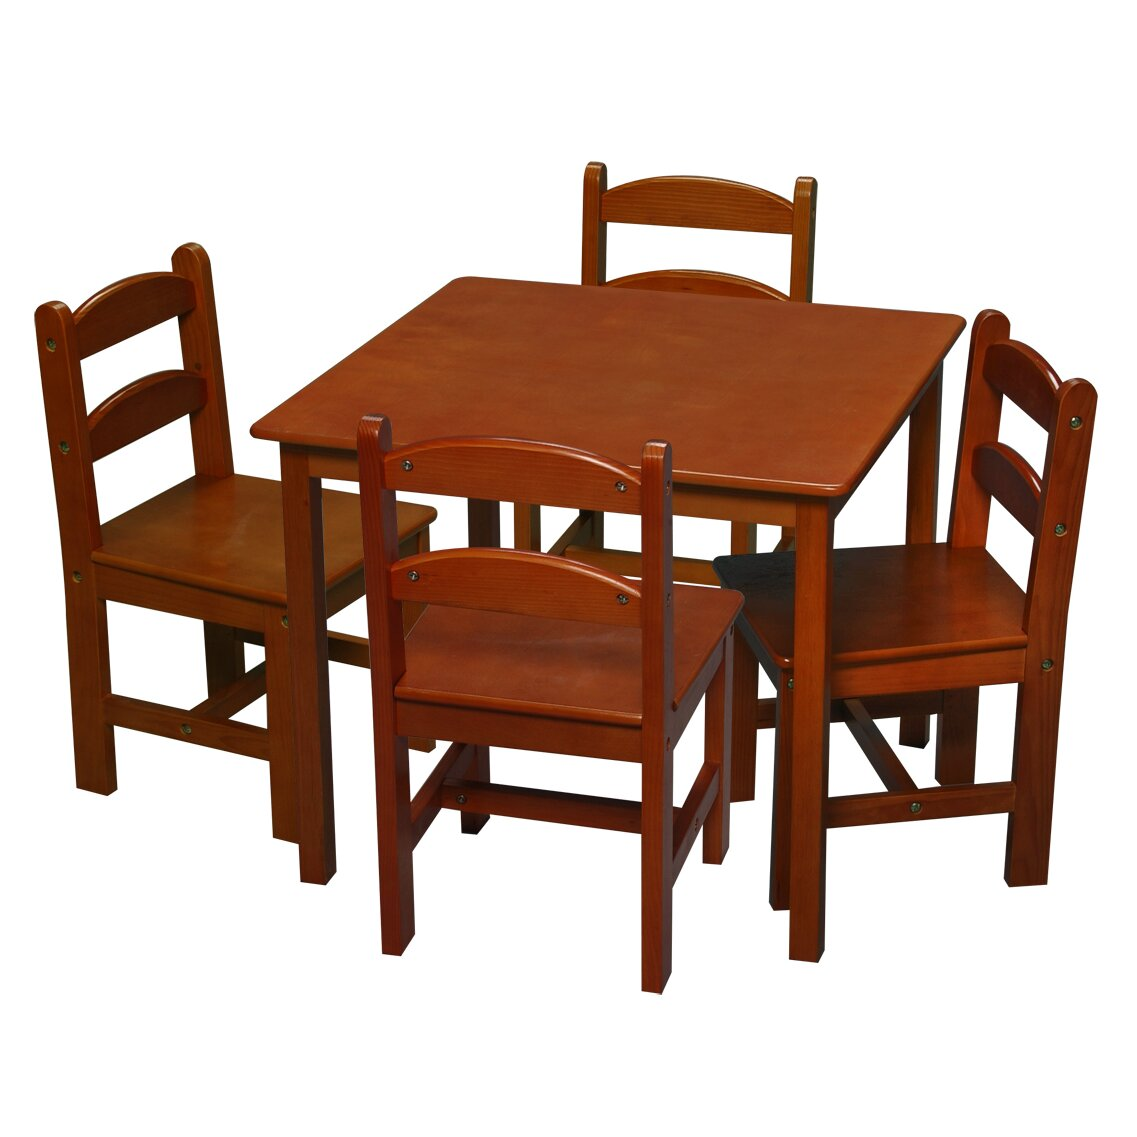 Gift mark kids 5 piece table chair set reviews wayfair for Table chair images